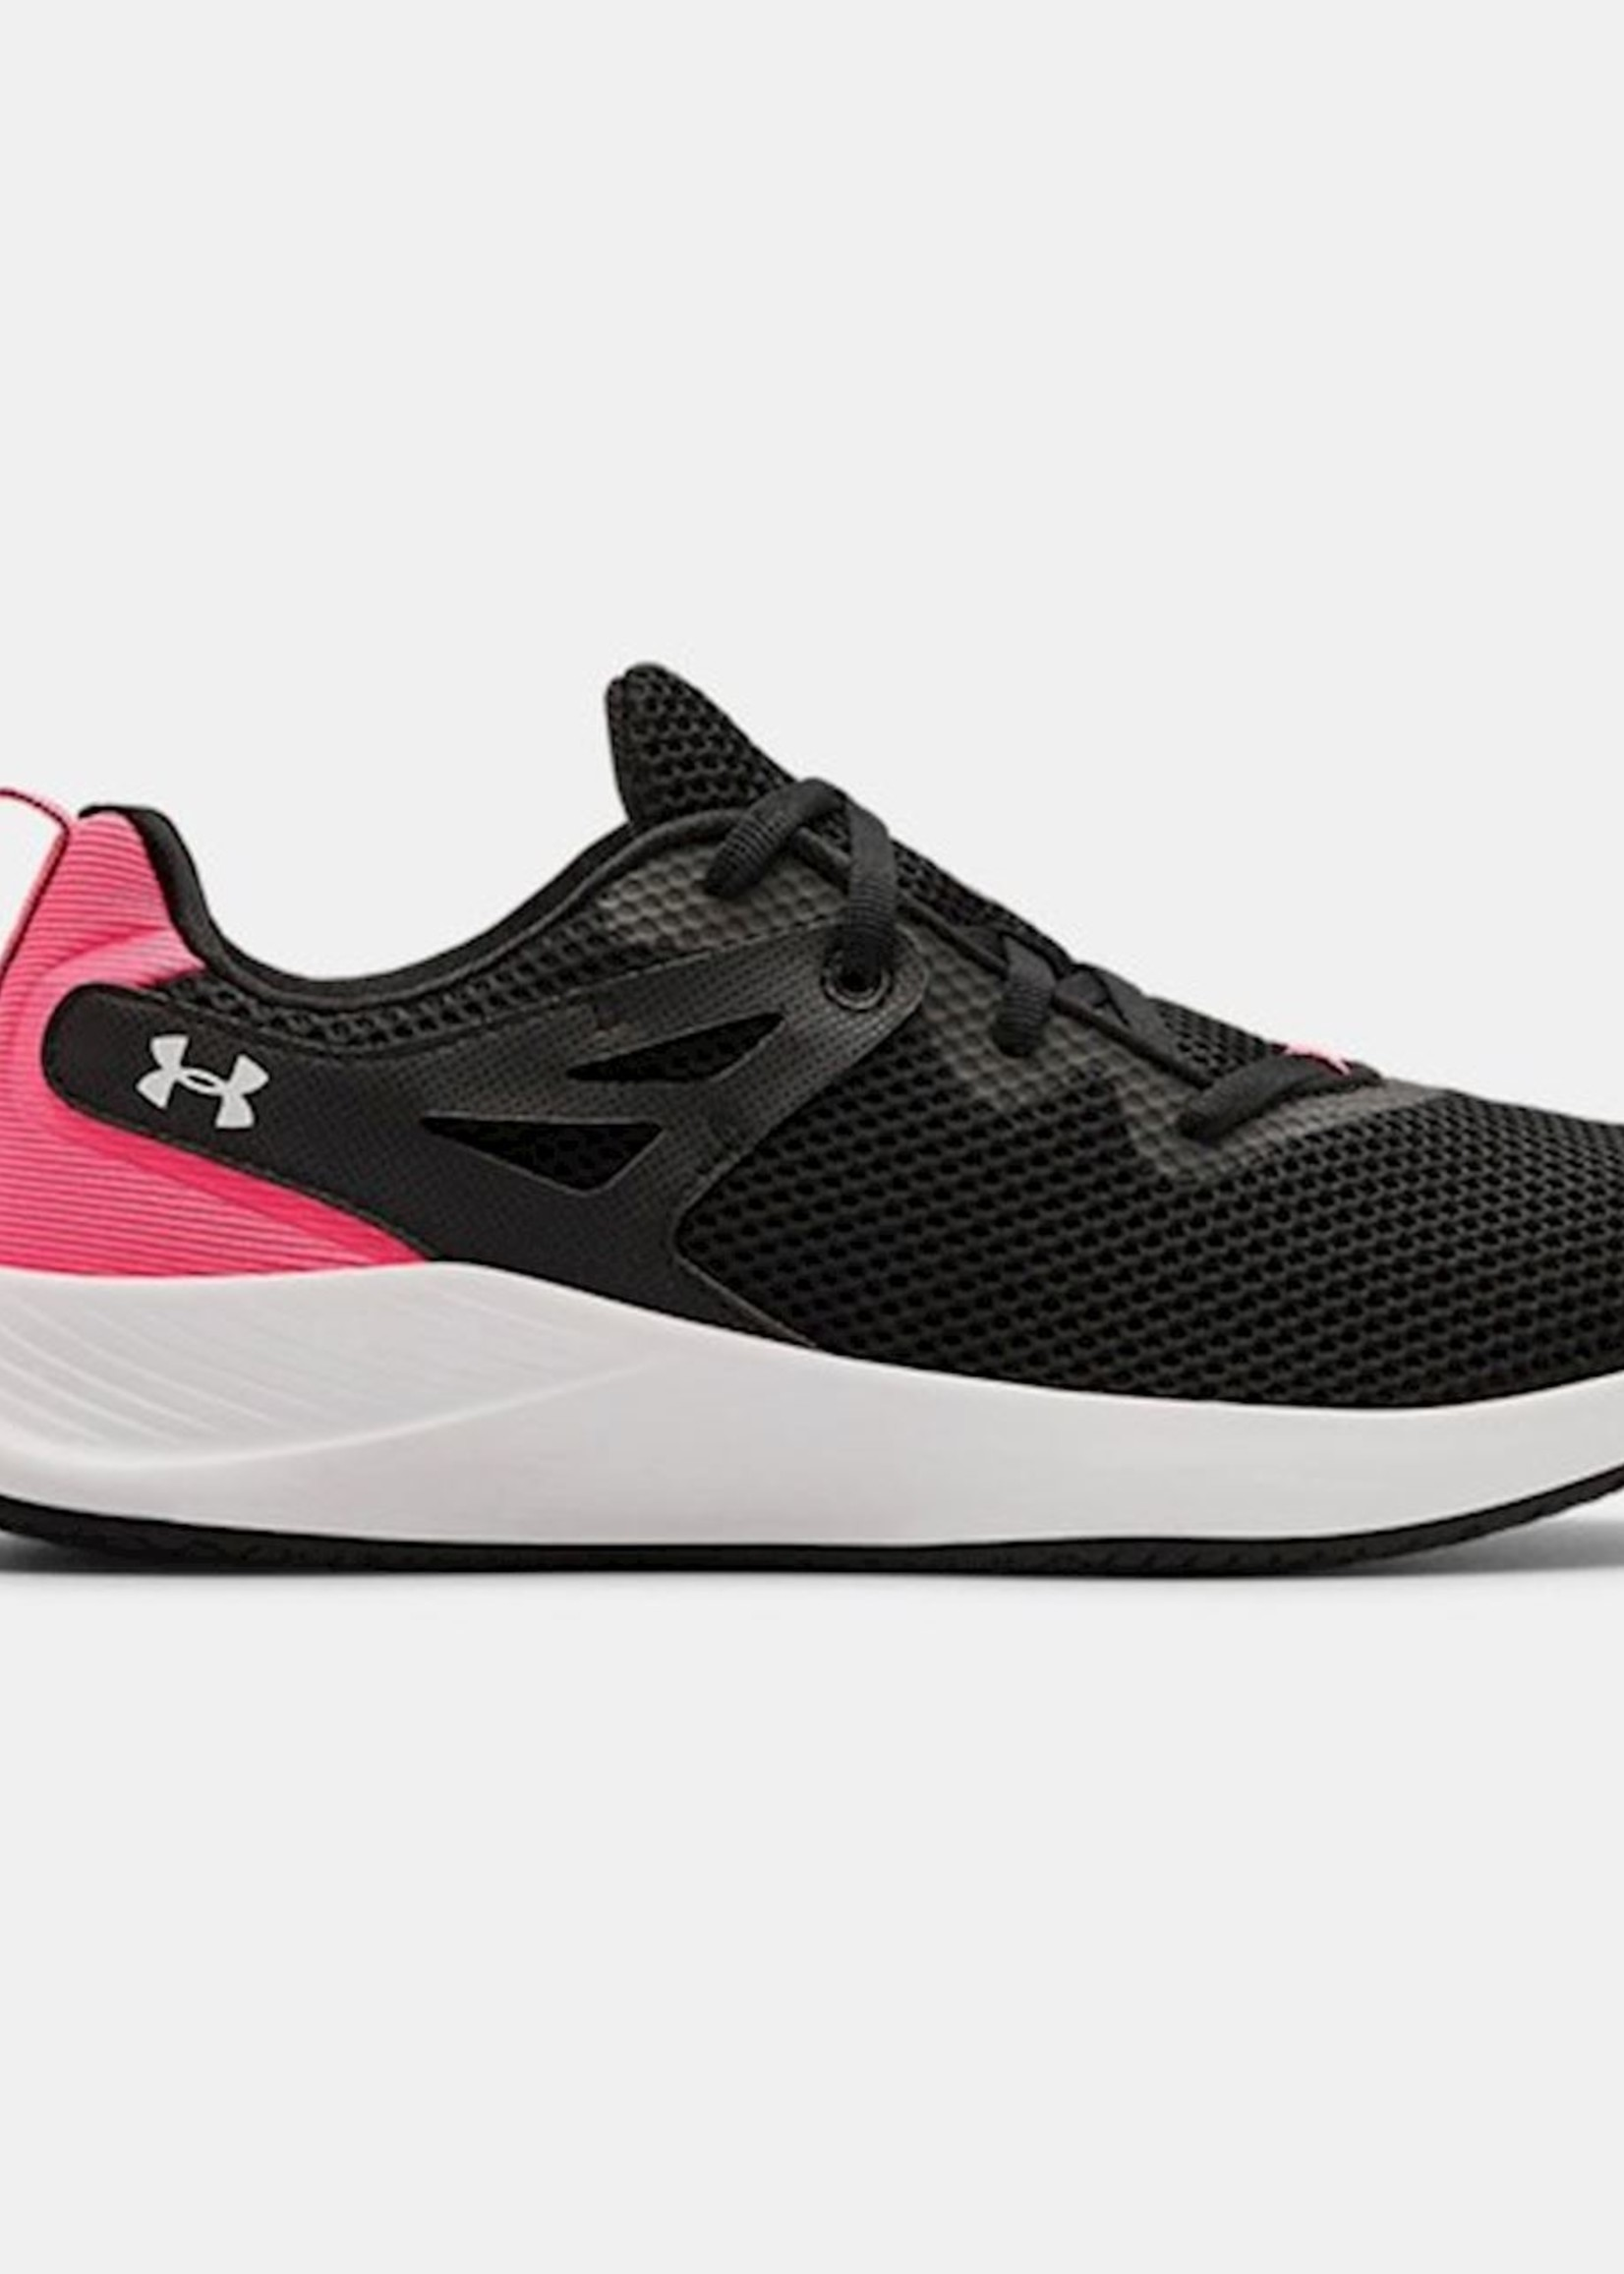 Under Armour WOMEN'S UA CHARGED BREATHE TRAINER 2 NM TRAINING SHOES 3023012